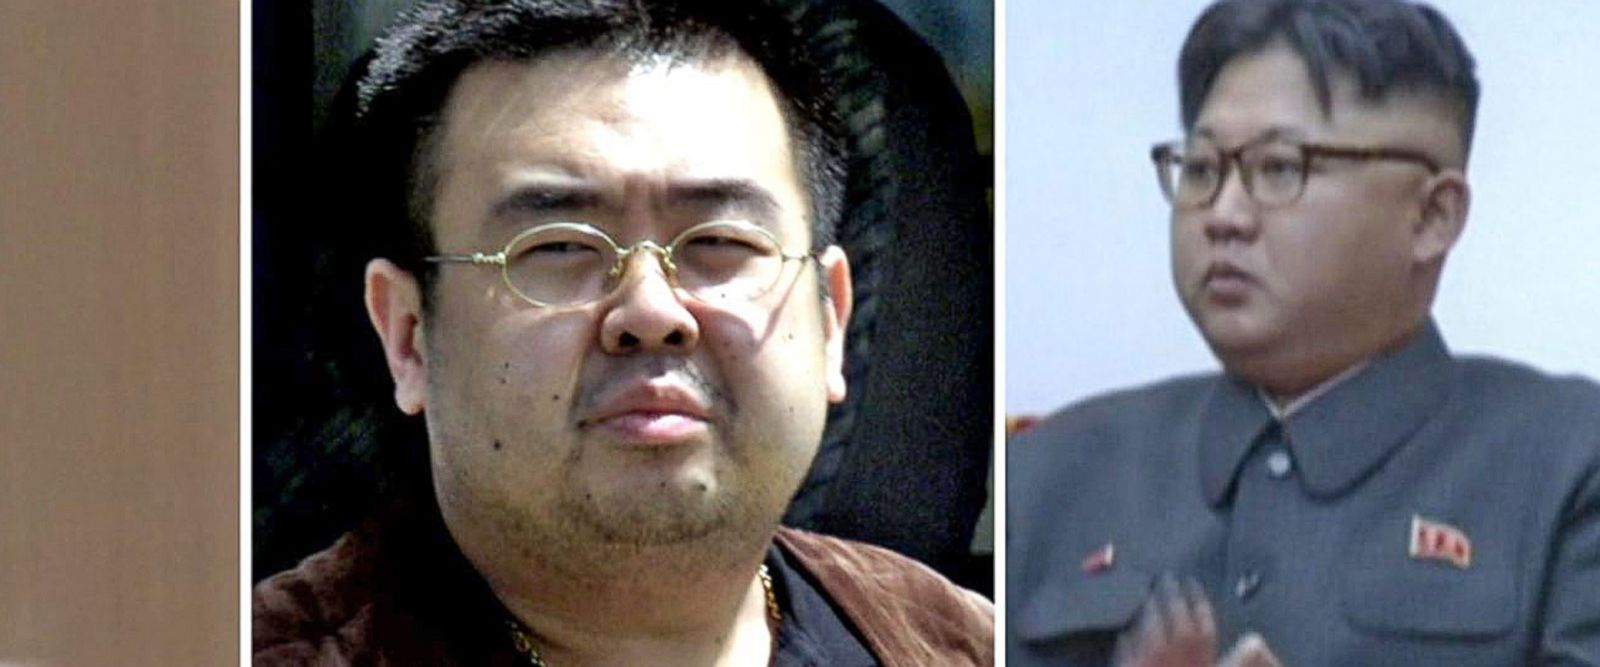 VIDEO: Half-brother of Kim Jong Un killed in poison spray attack